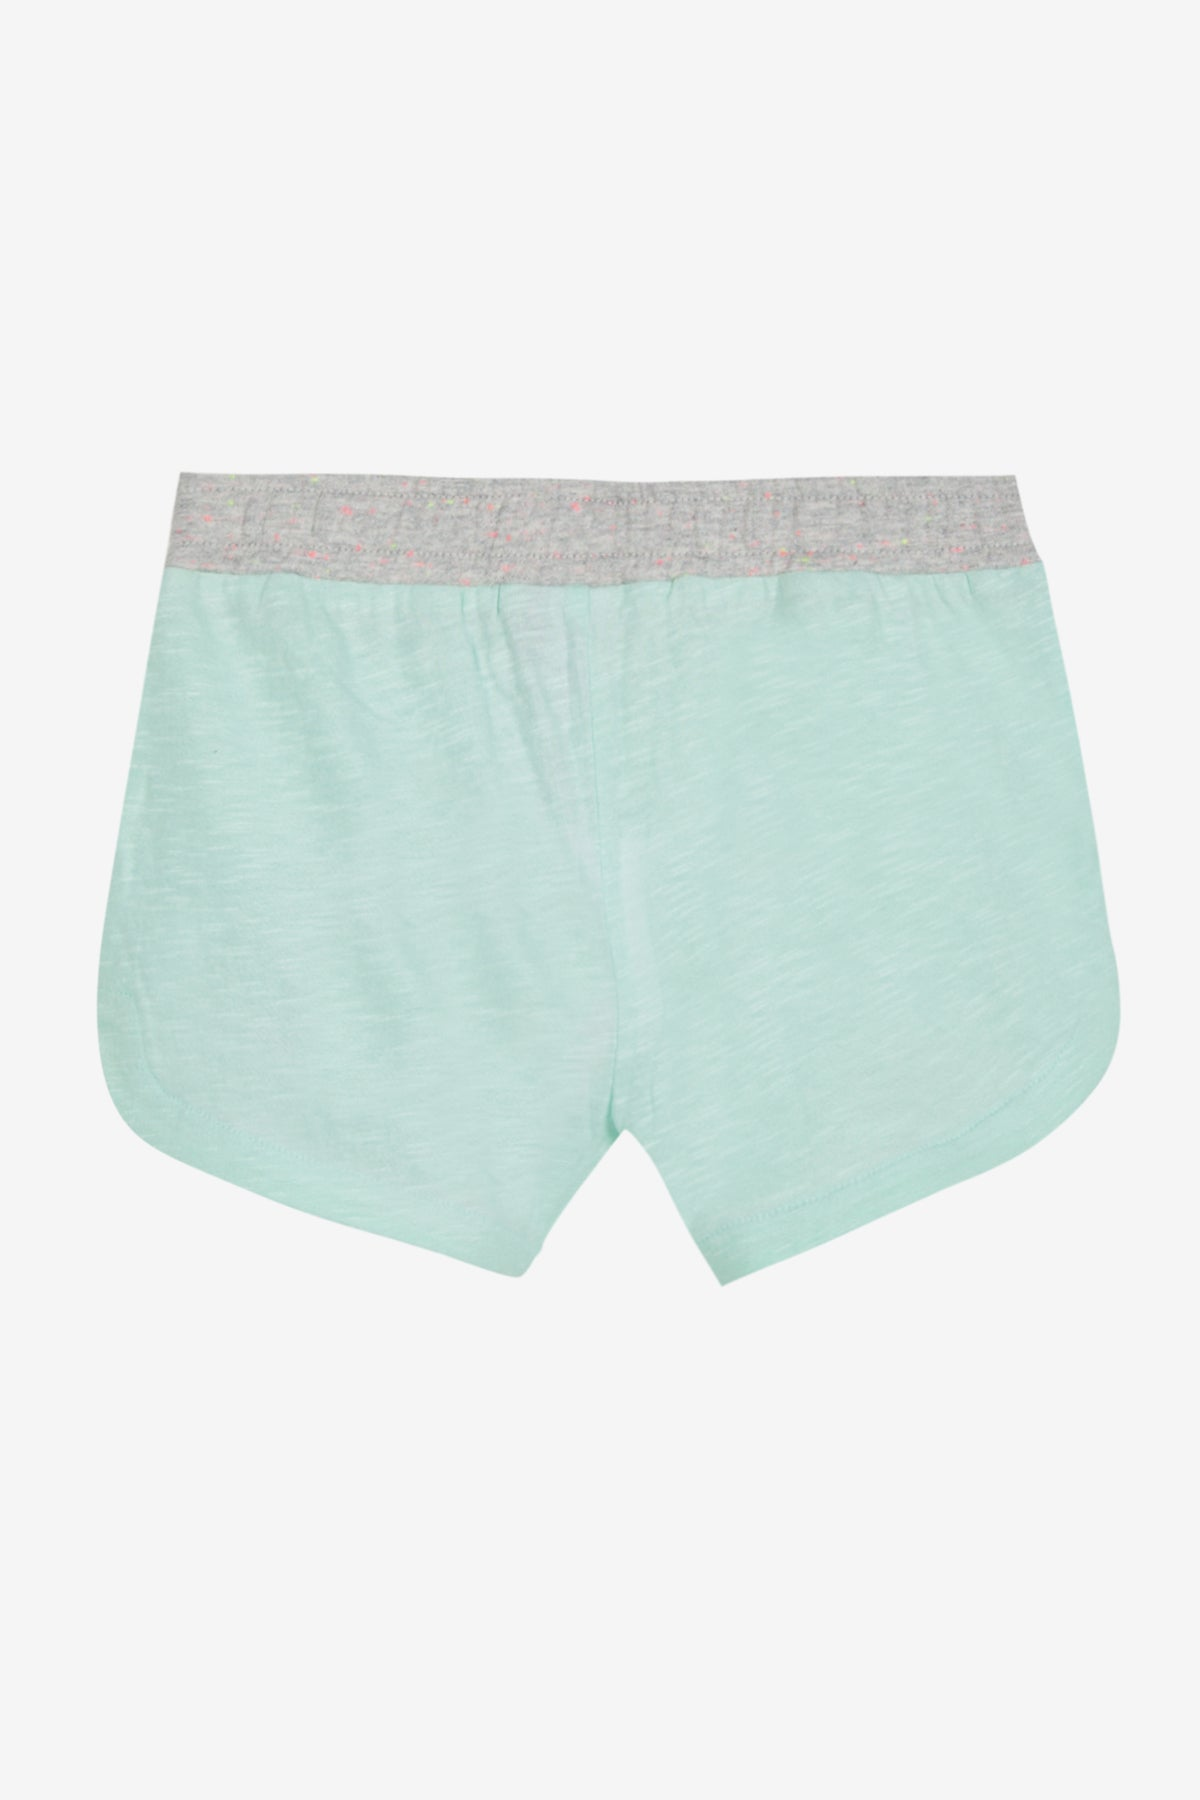 3pommes Celadon Green Baby Girls Shorts